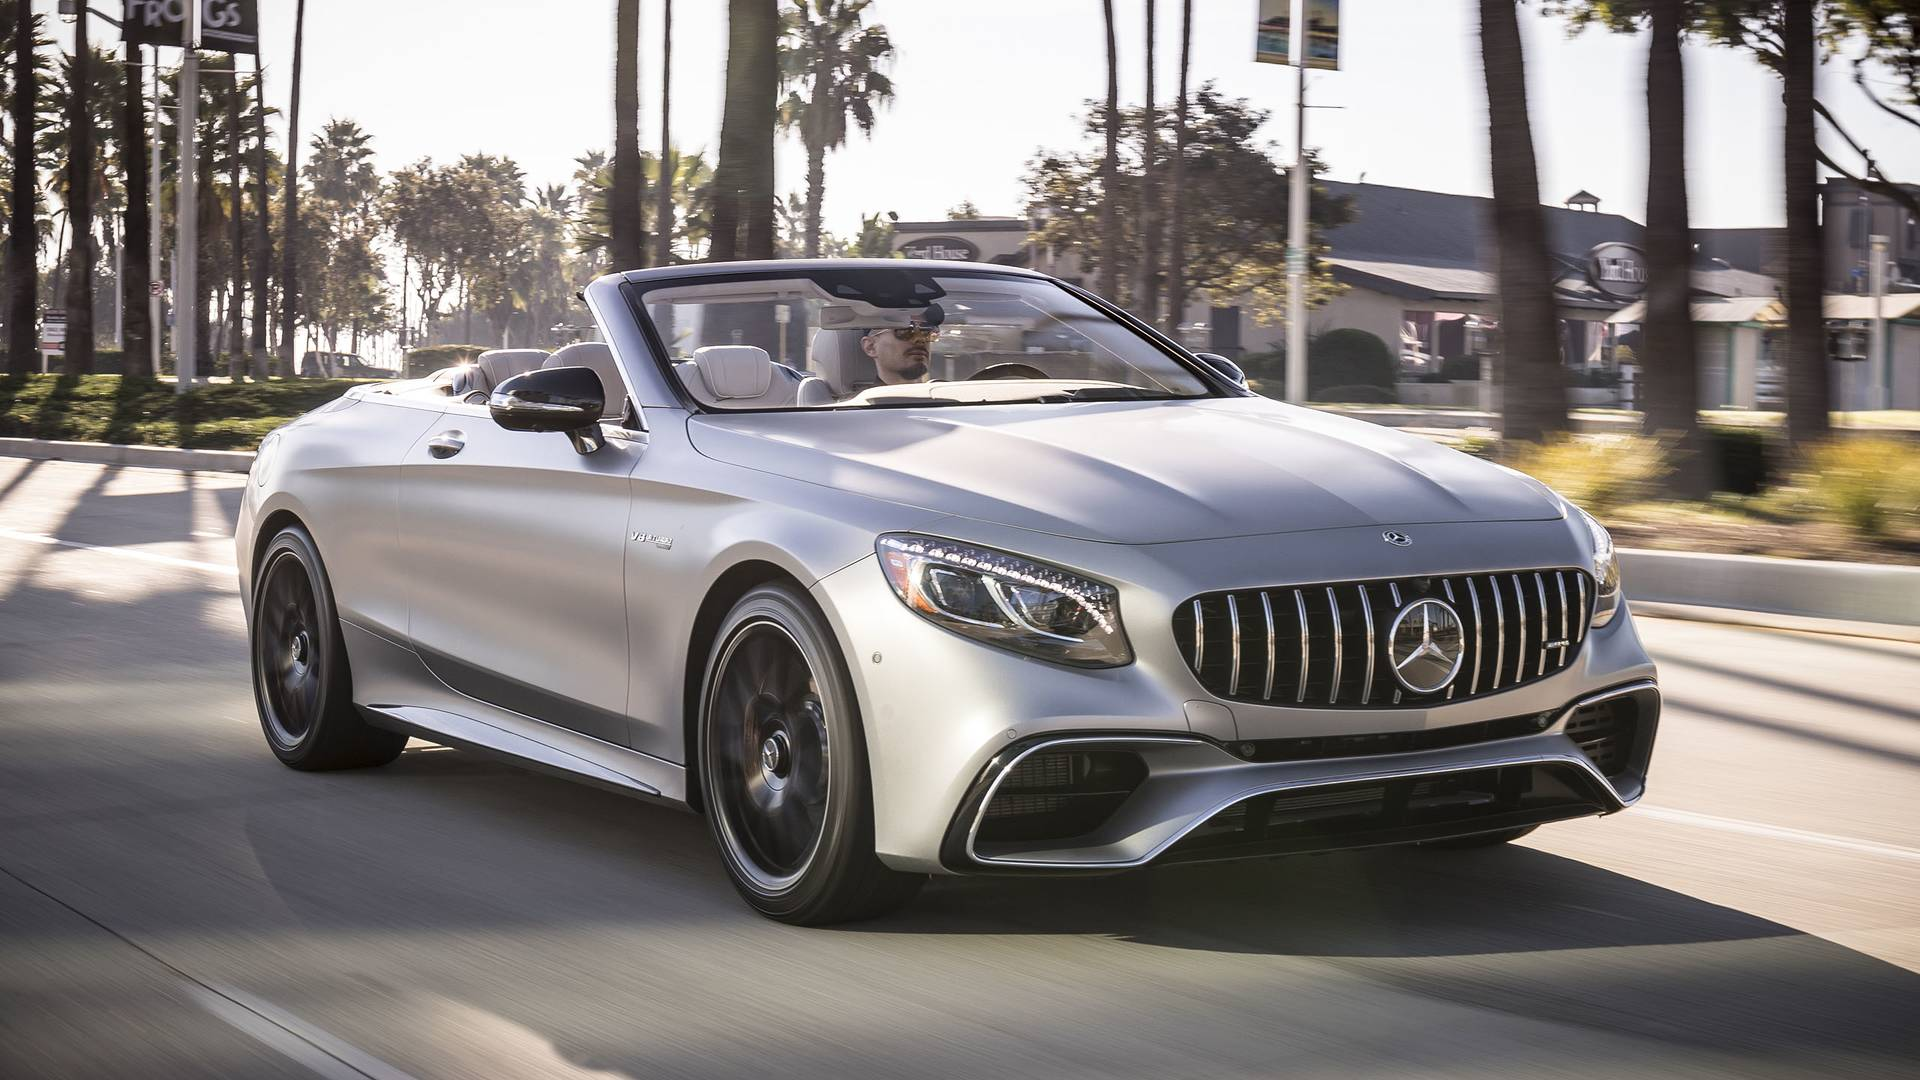 https://icdn-9.motor1.com/images/mgl/mW8zA/s1/2018-mercedes-amg-s63-cabriolet-review.jpg